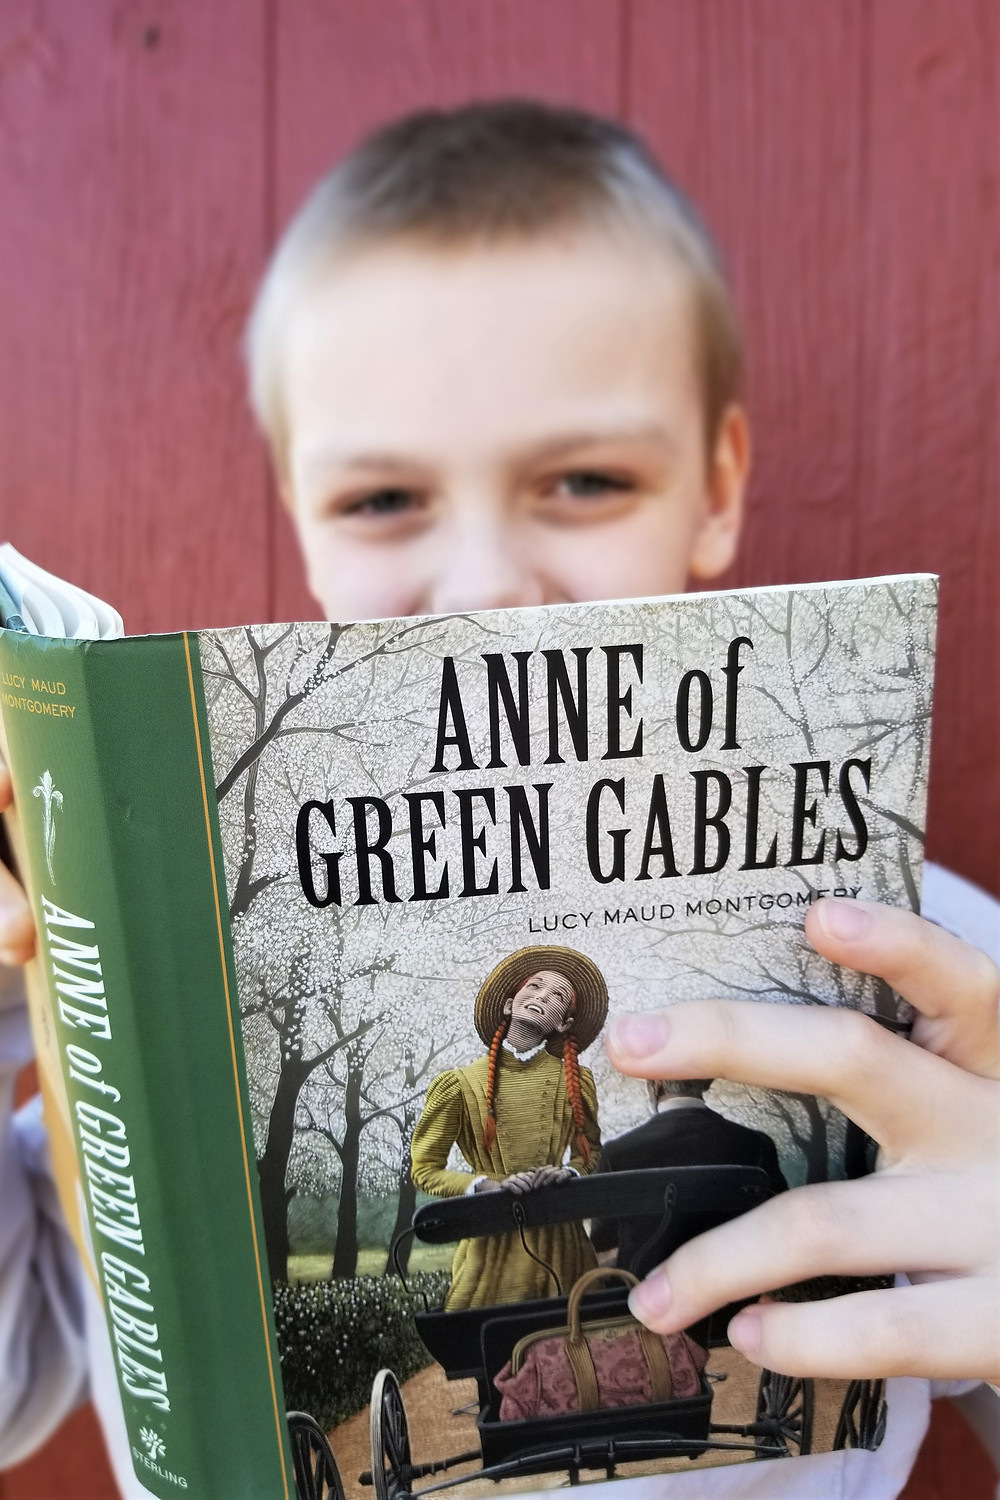 anne of green gables summary, book review blog, elementary school reading list